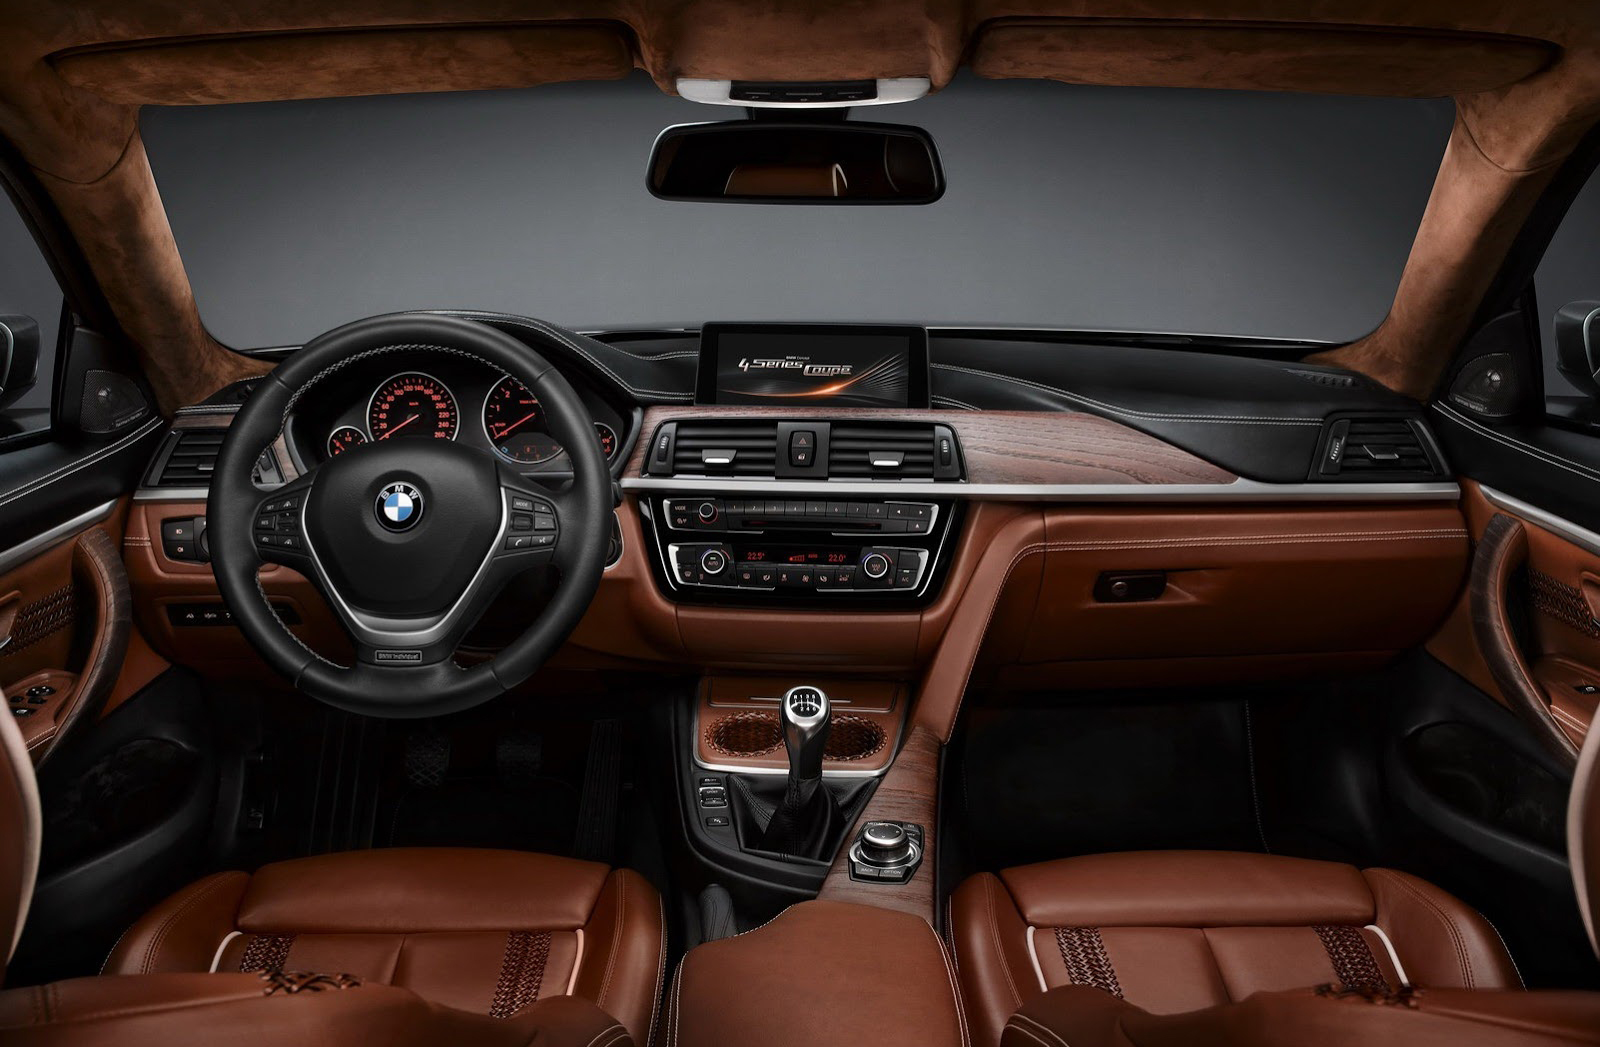 2014 BMW 4 Series Coupe 6 2014 BMW 4 Series Coupe features